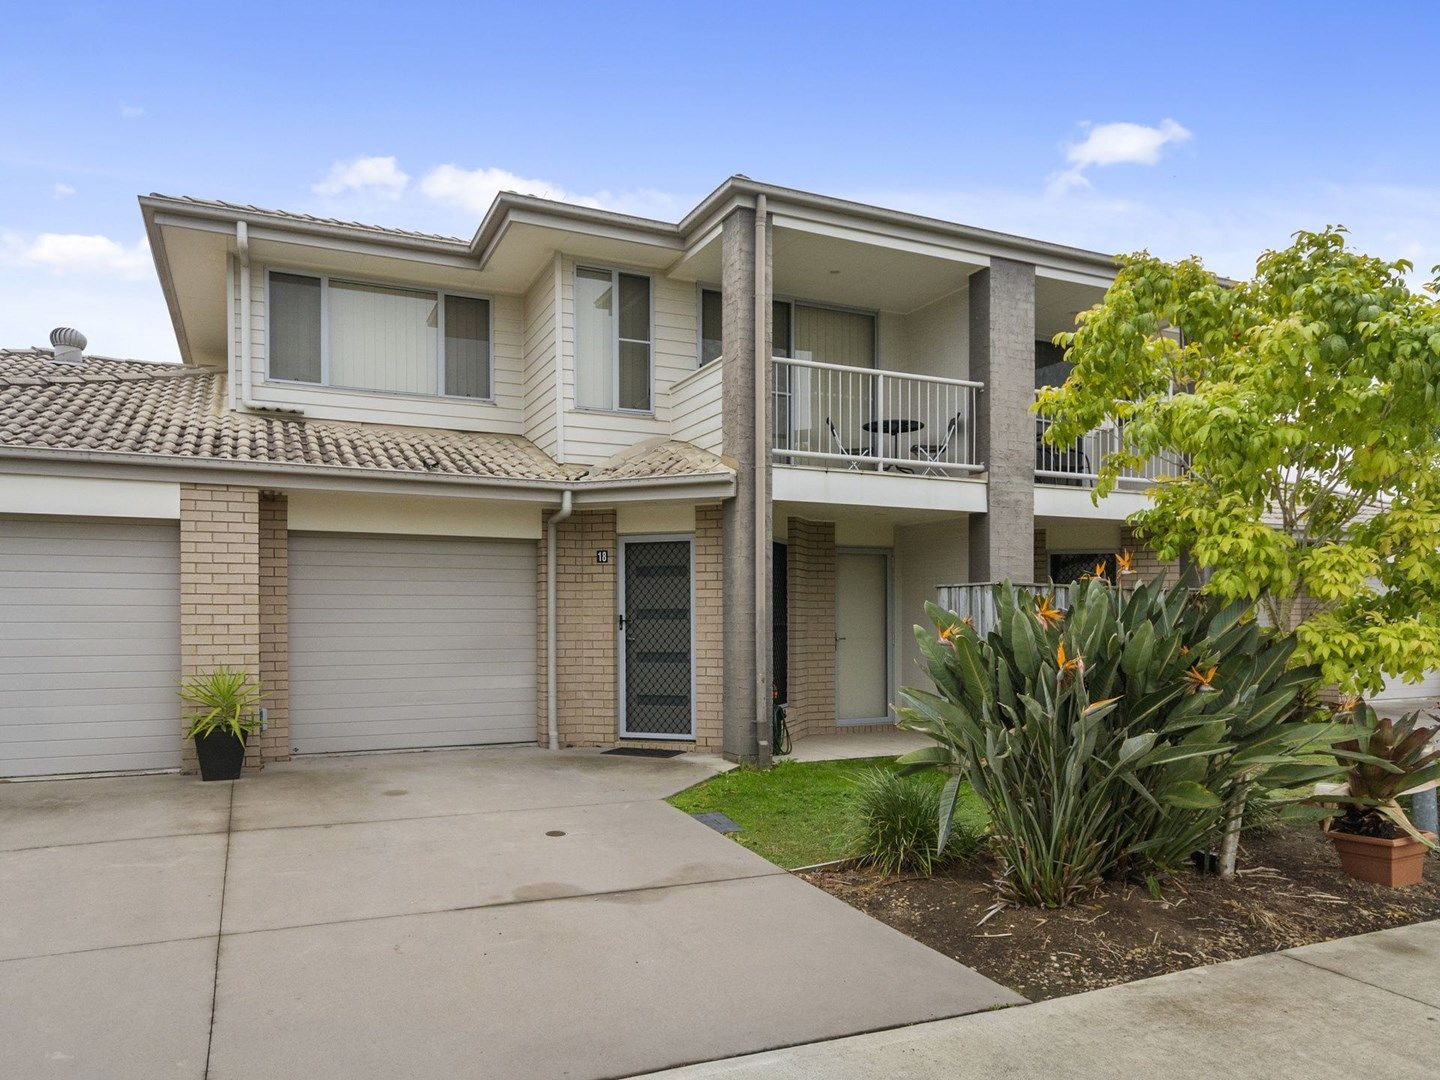 18/15 Workshops Street, Brassall QLD 4305, Image 0